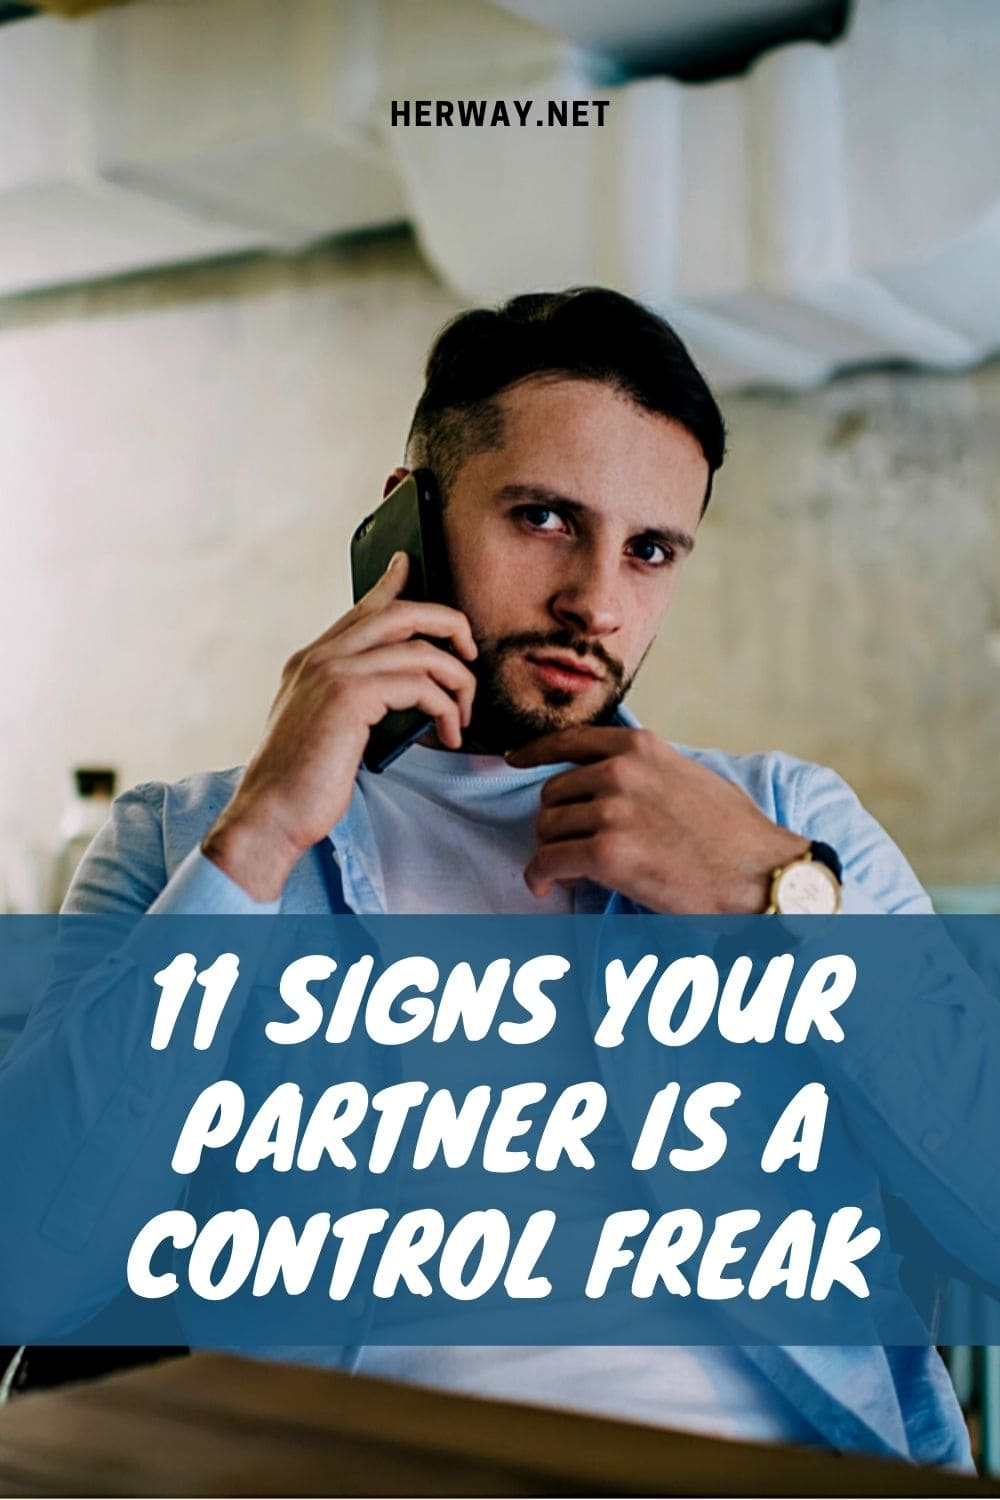 11 Signs Your Partner Is A Control Freak